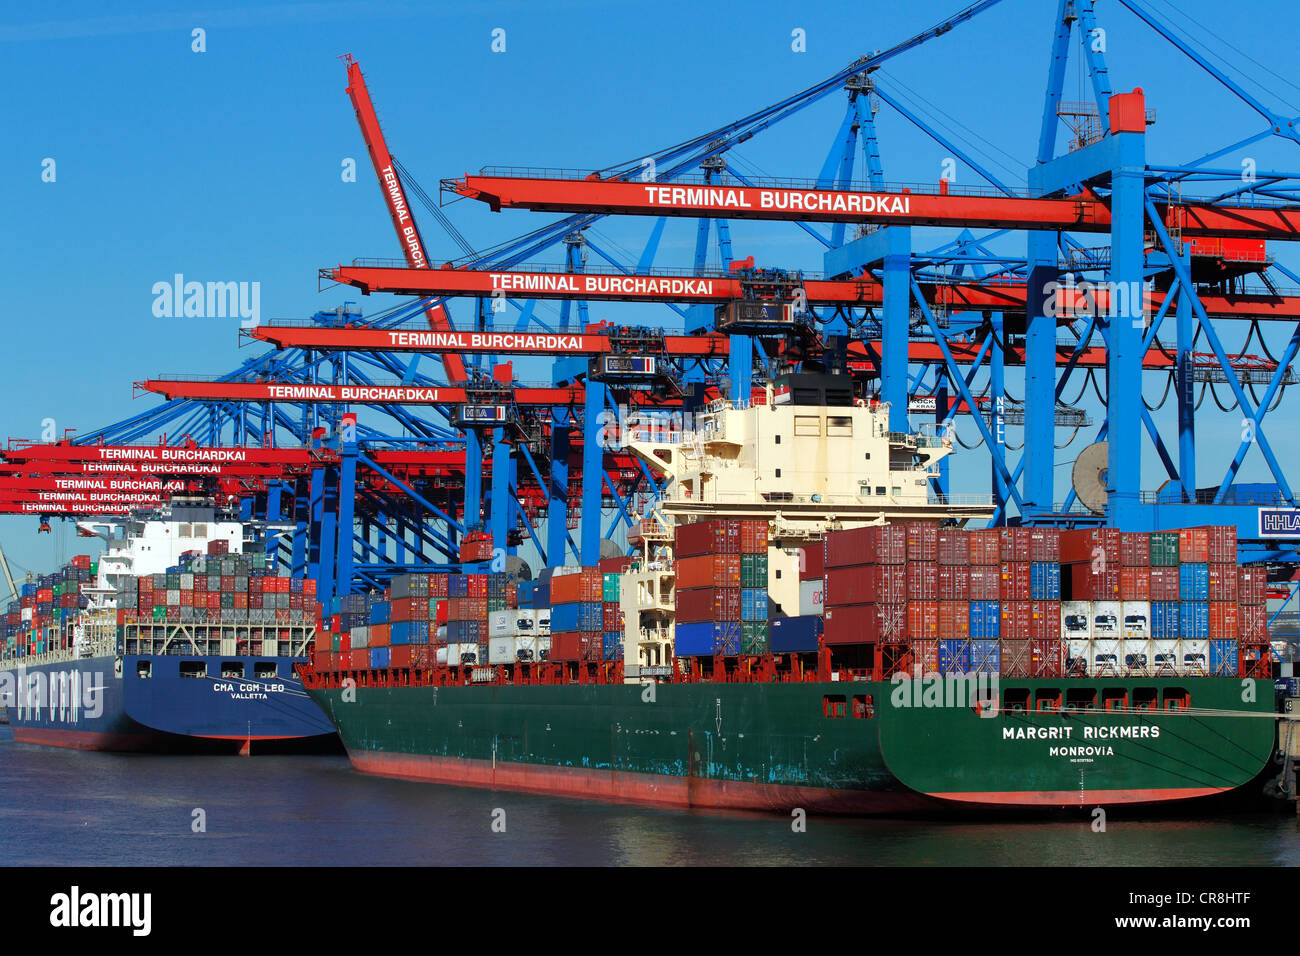 Container ships, Margrit Rickmers and CMA CGM Leo, being loaded with containers at the Container Terminal Burchardkai - Stock Image